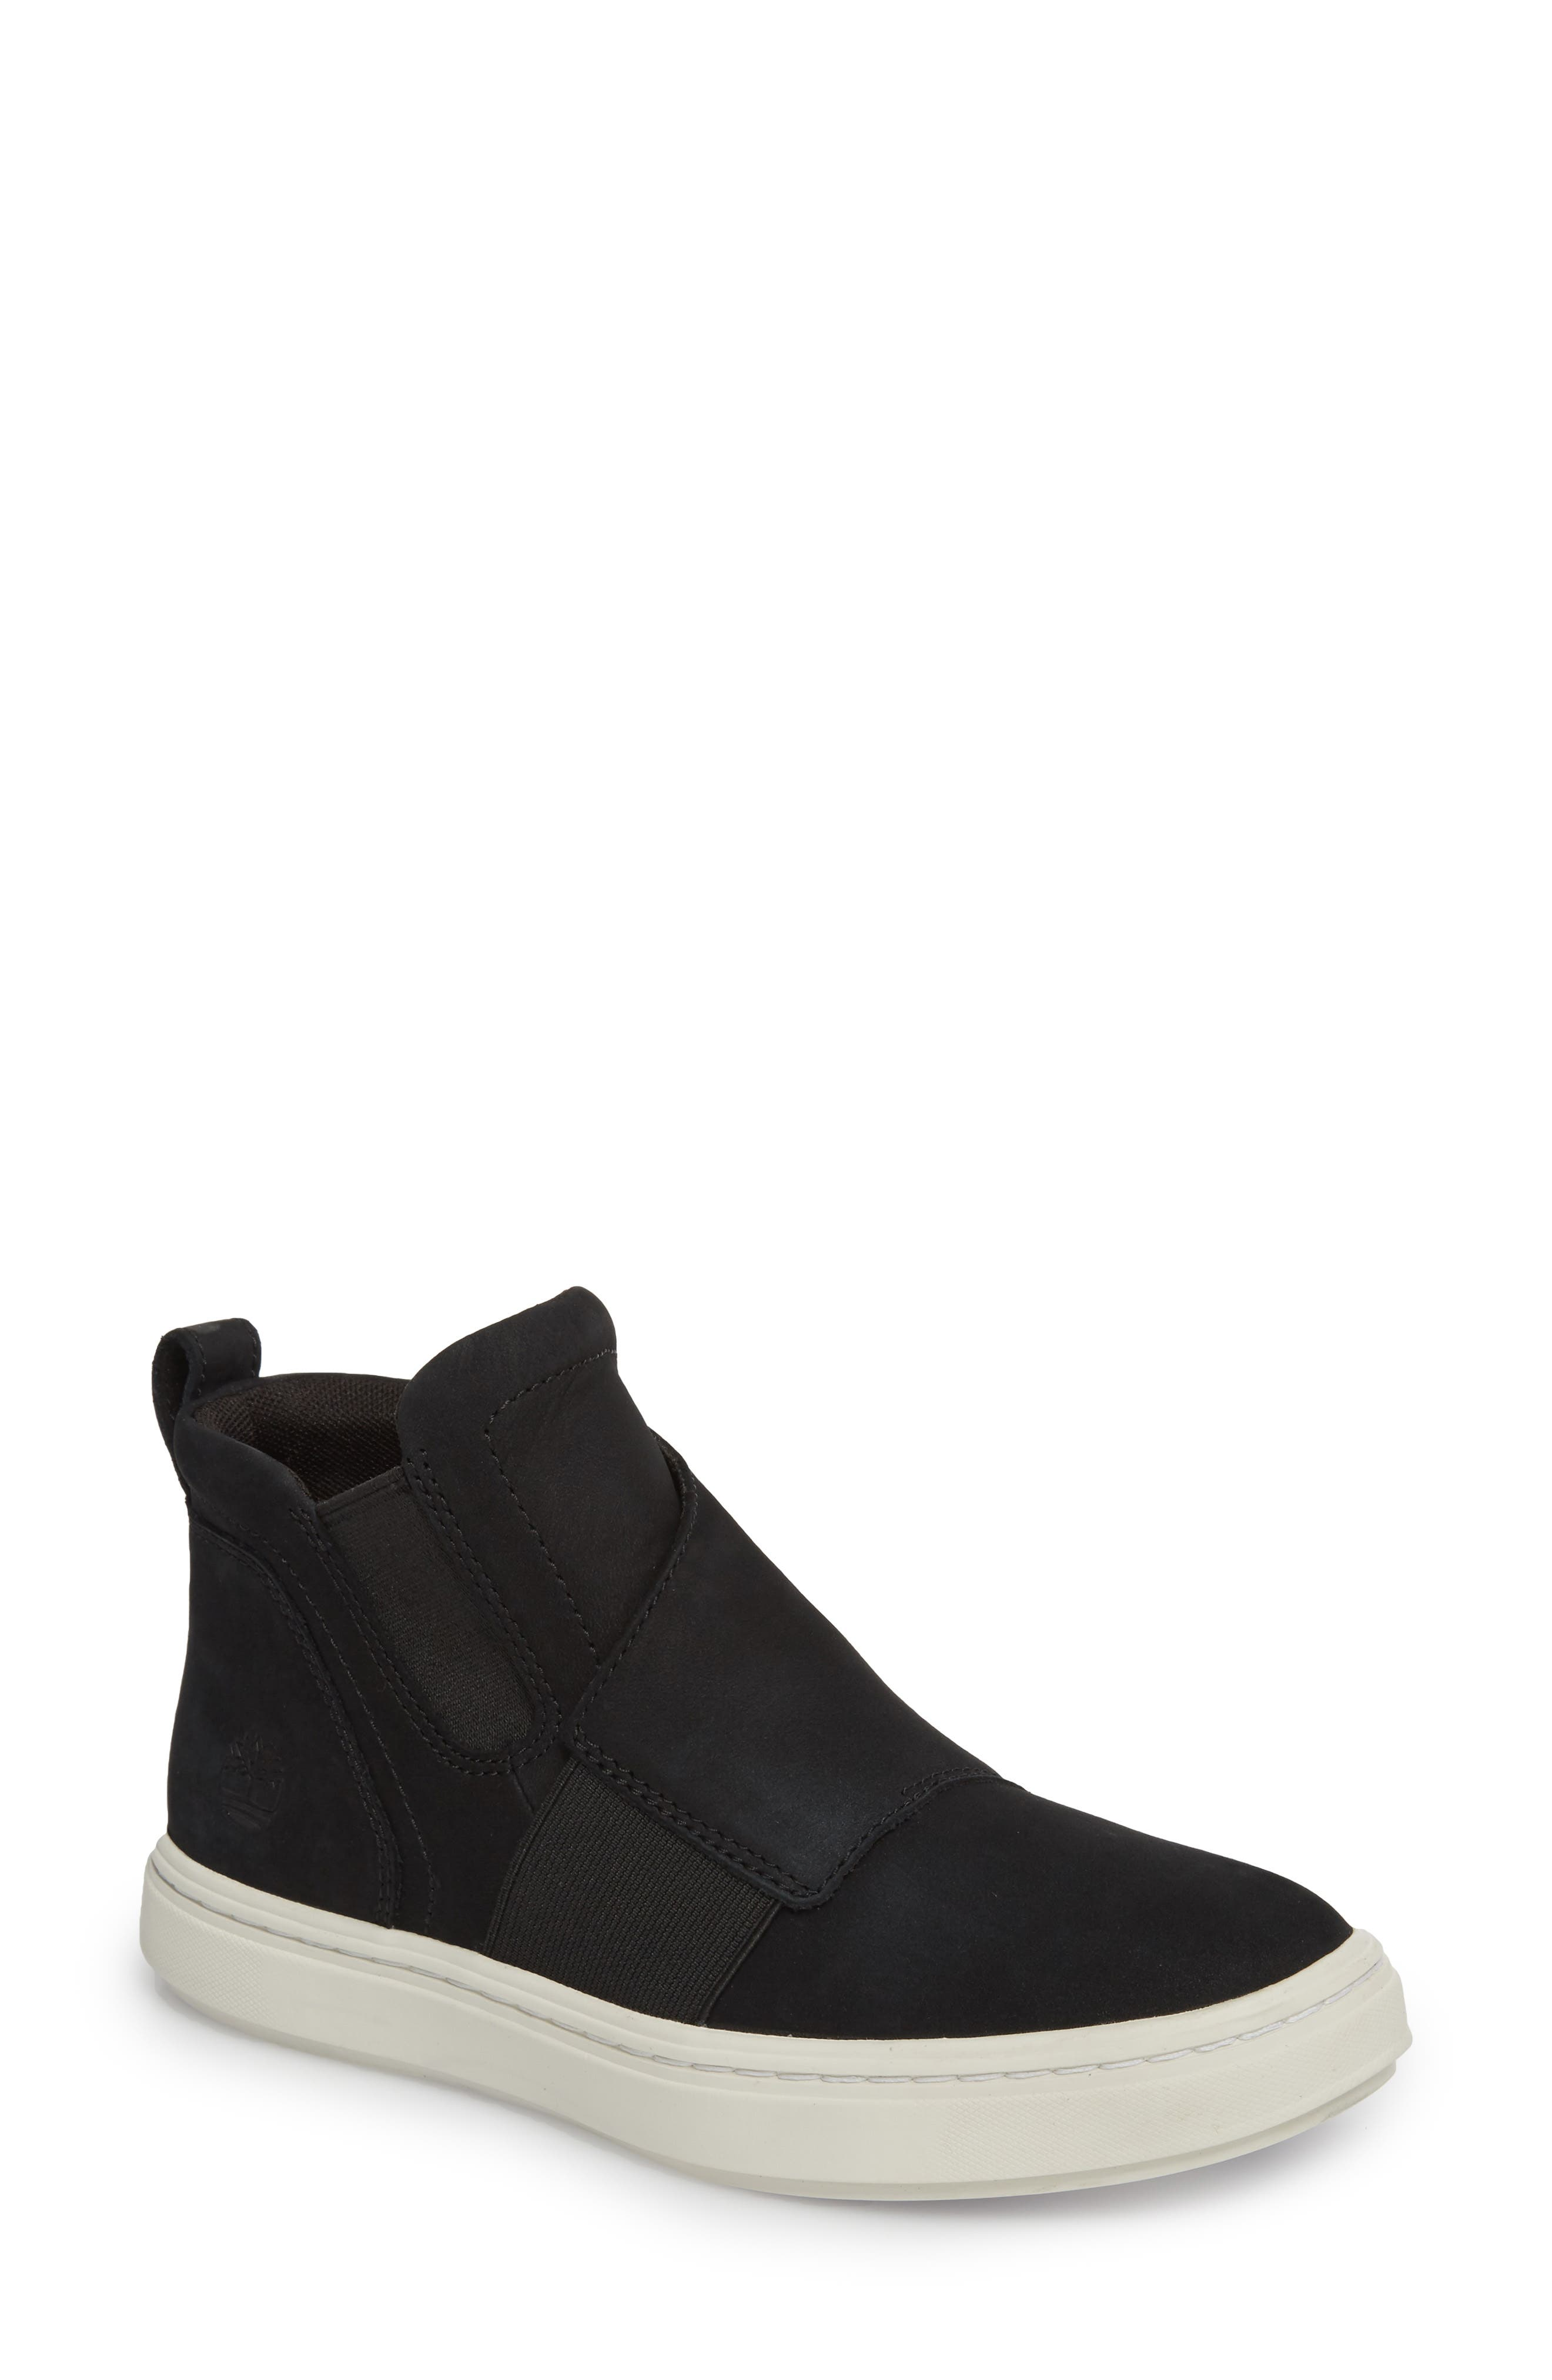 Londyn Chelsea Boot,                             Main thumbnail 1, color,                             001